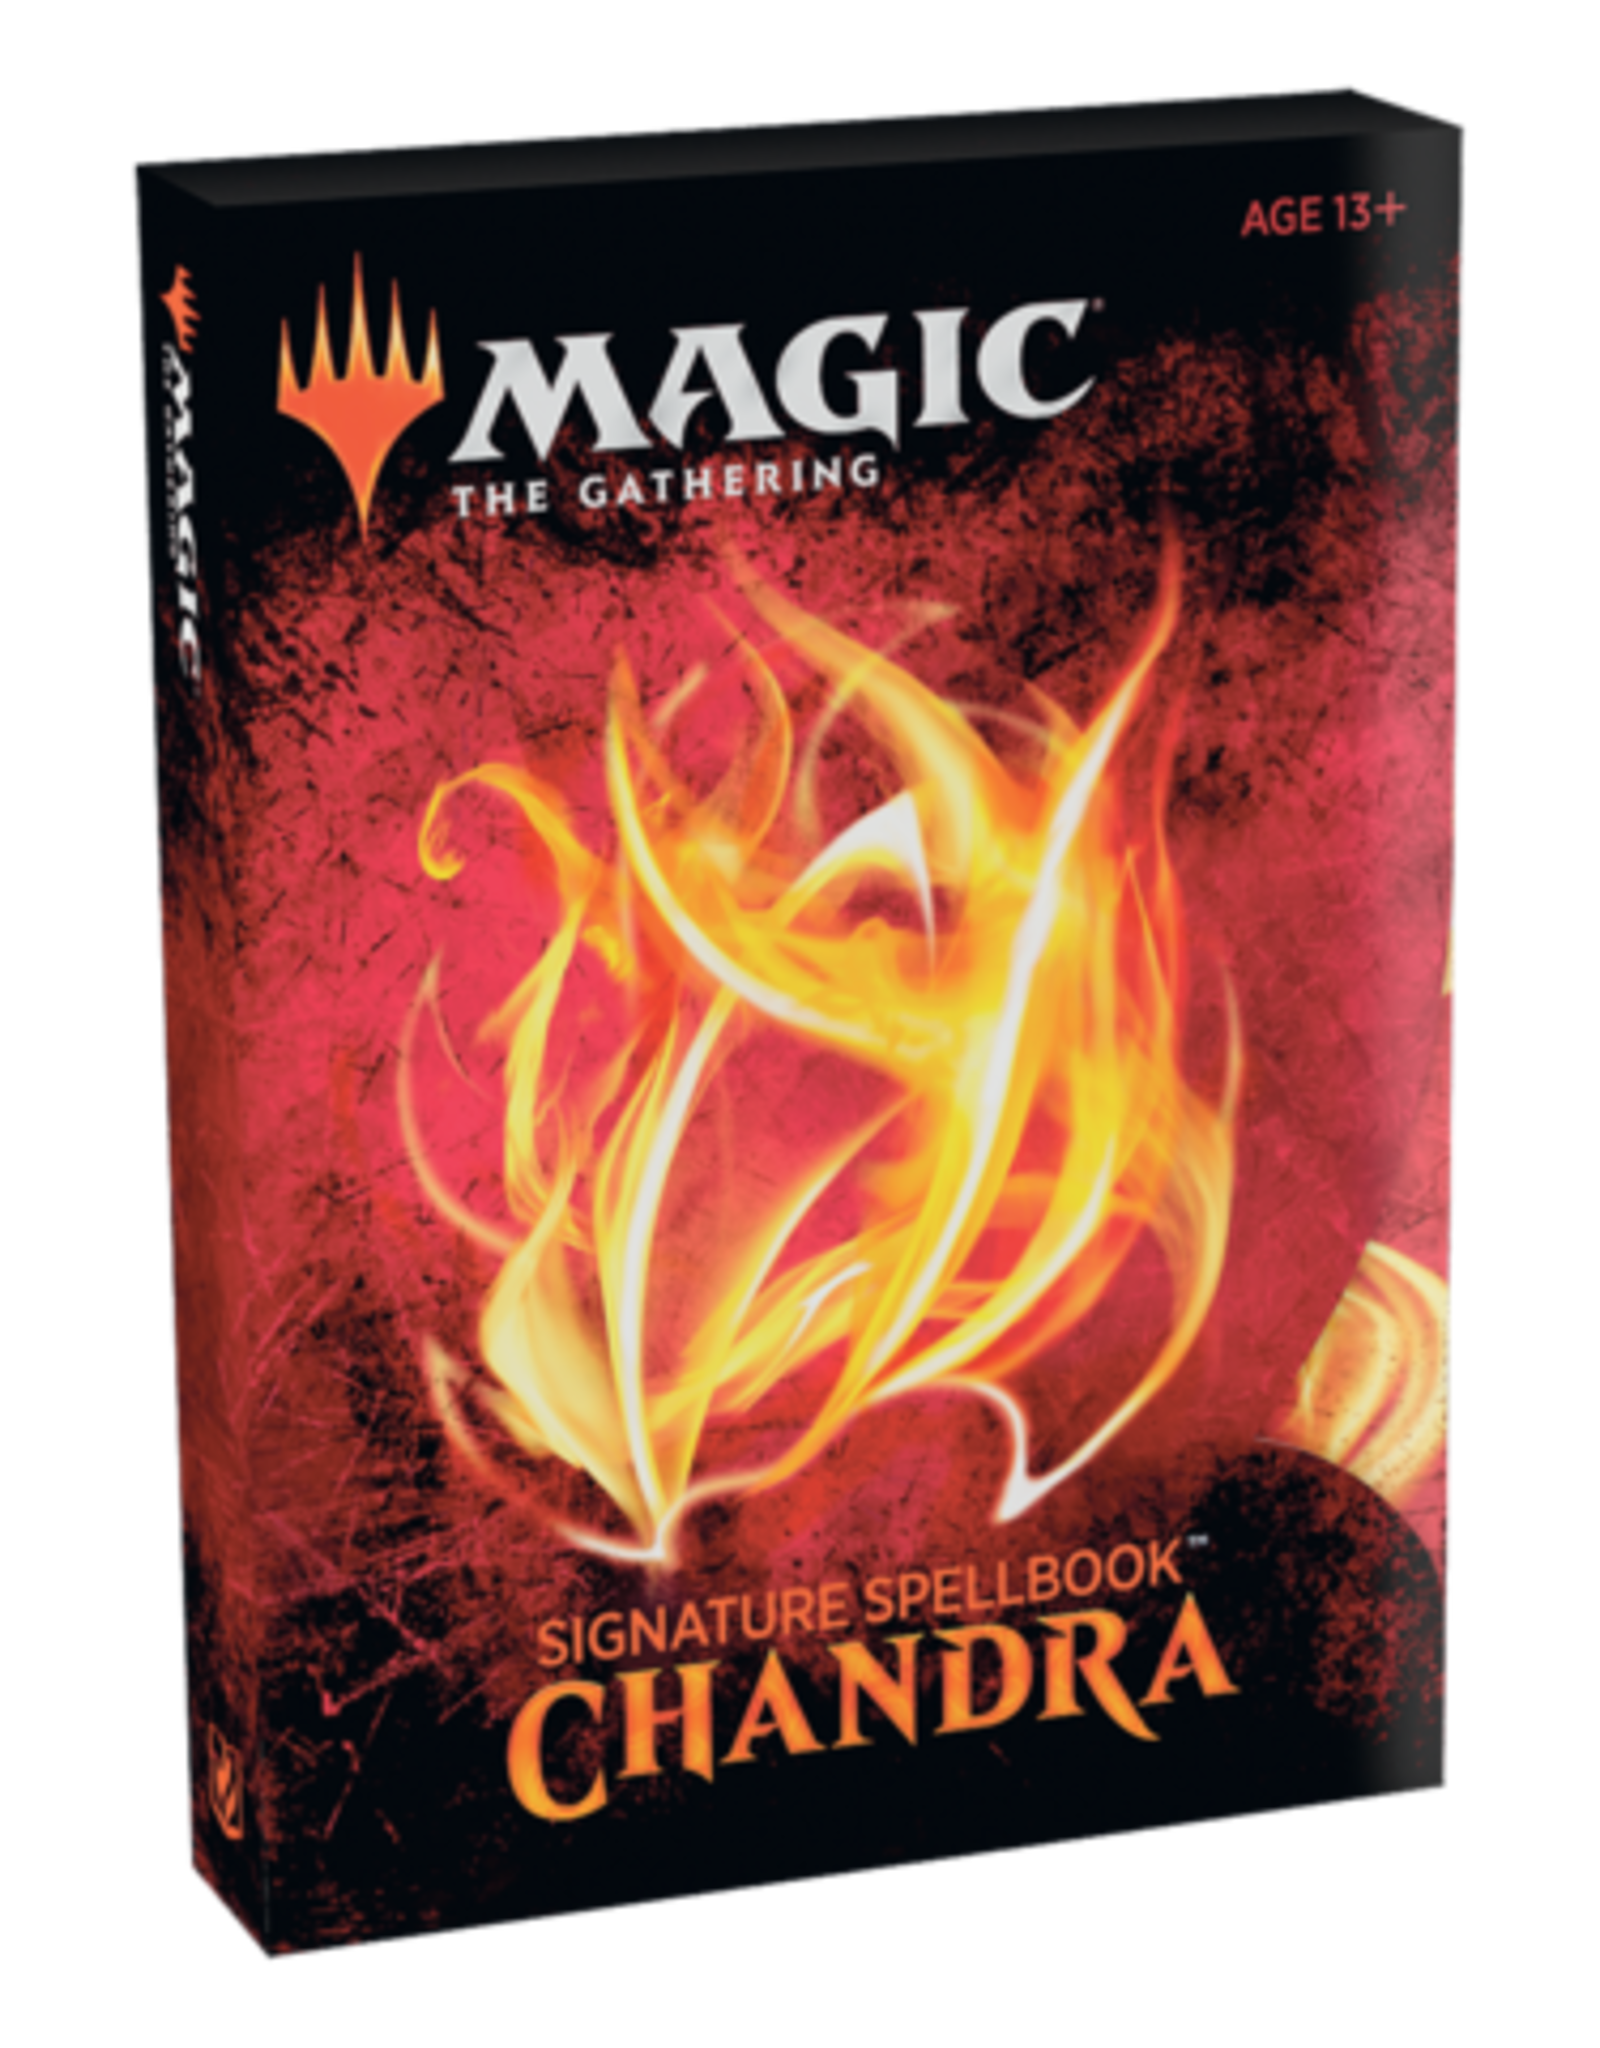 Wizards of the Coast Signature Spellbook: Chandra